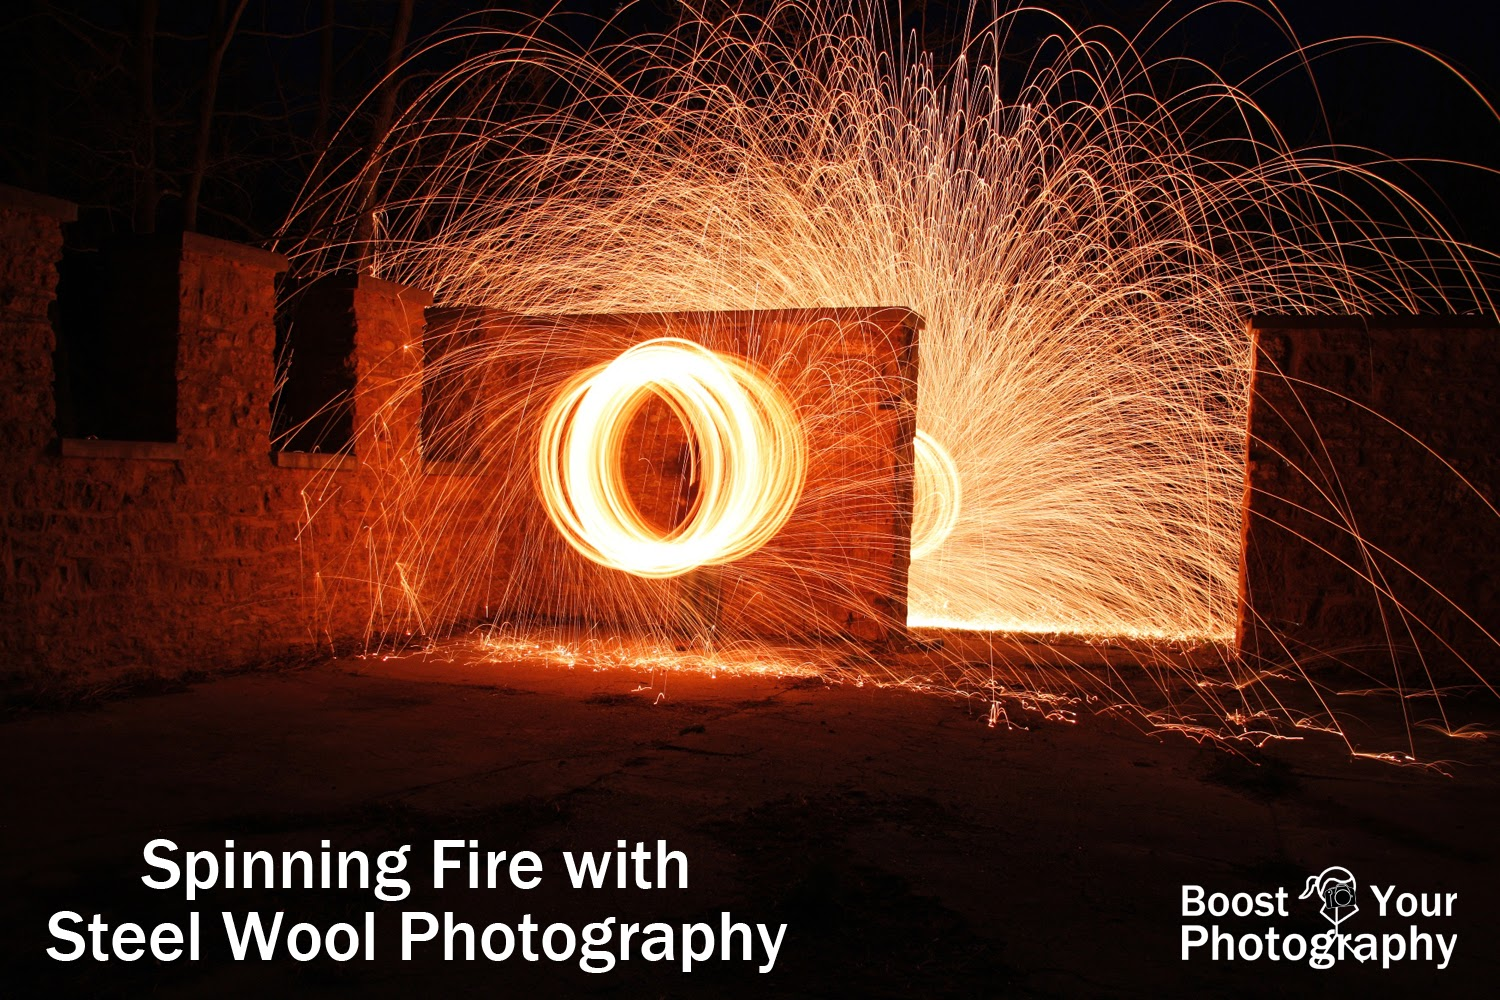 Spinning Fire with Steel Wool Photography | Boost Your Photography